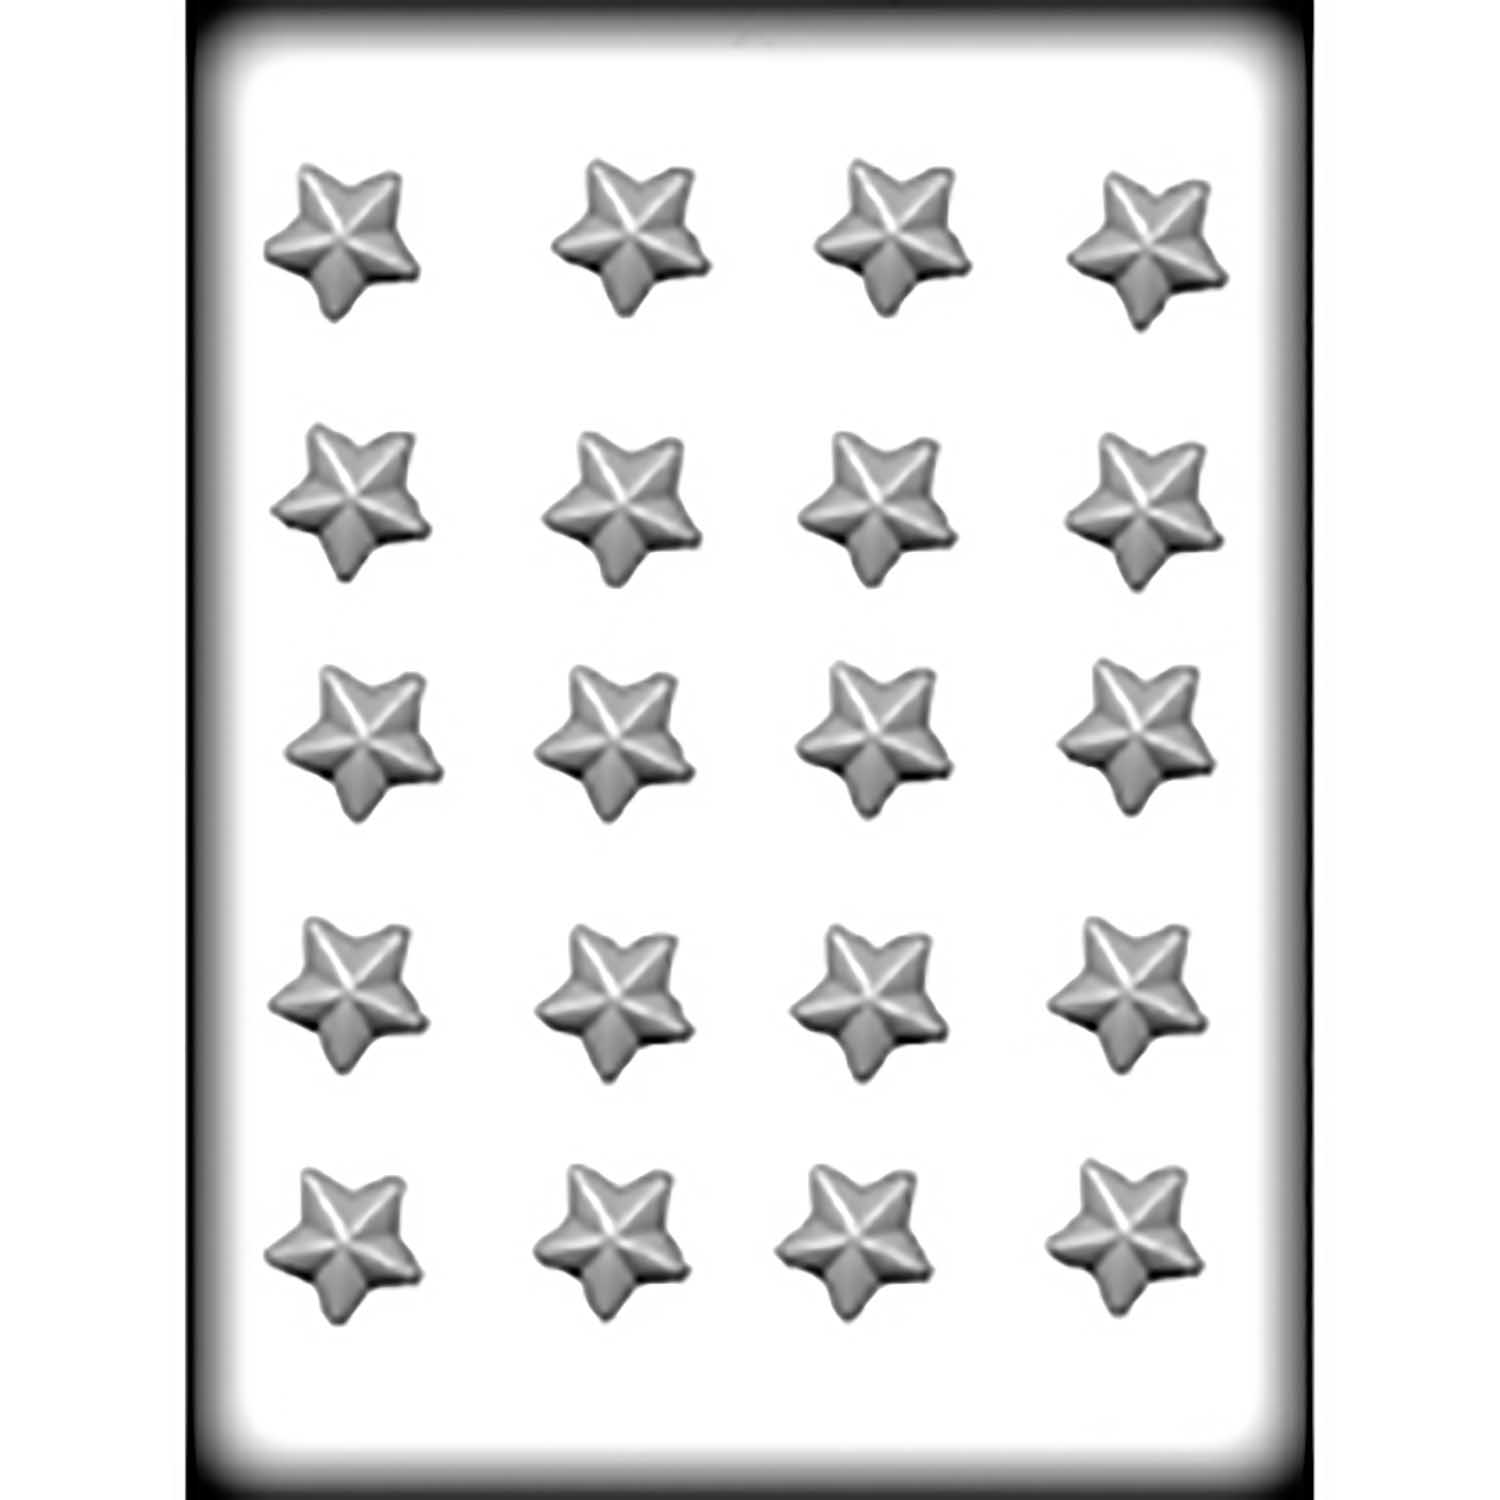 Hard Candy/Cookie Mold-Stars